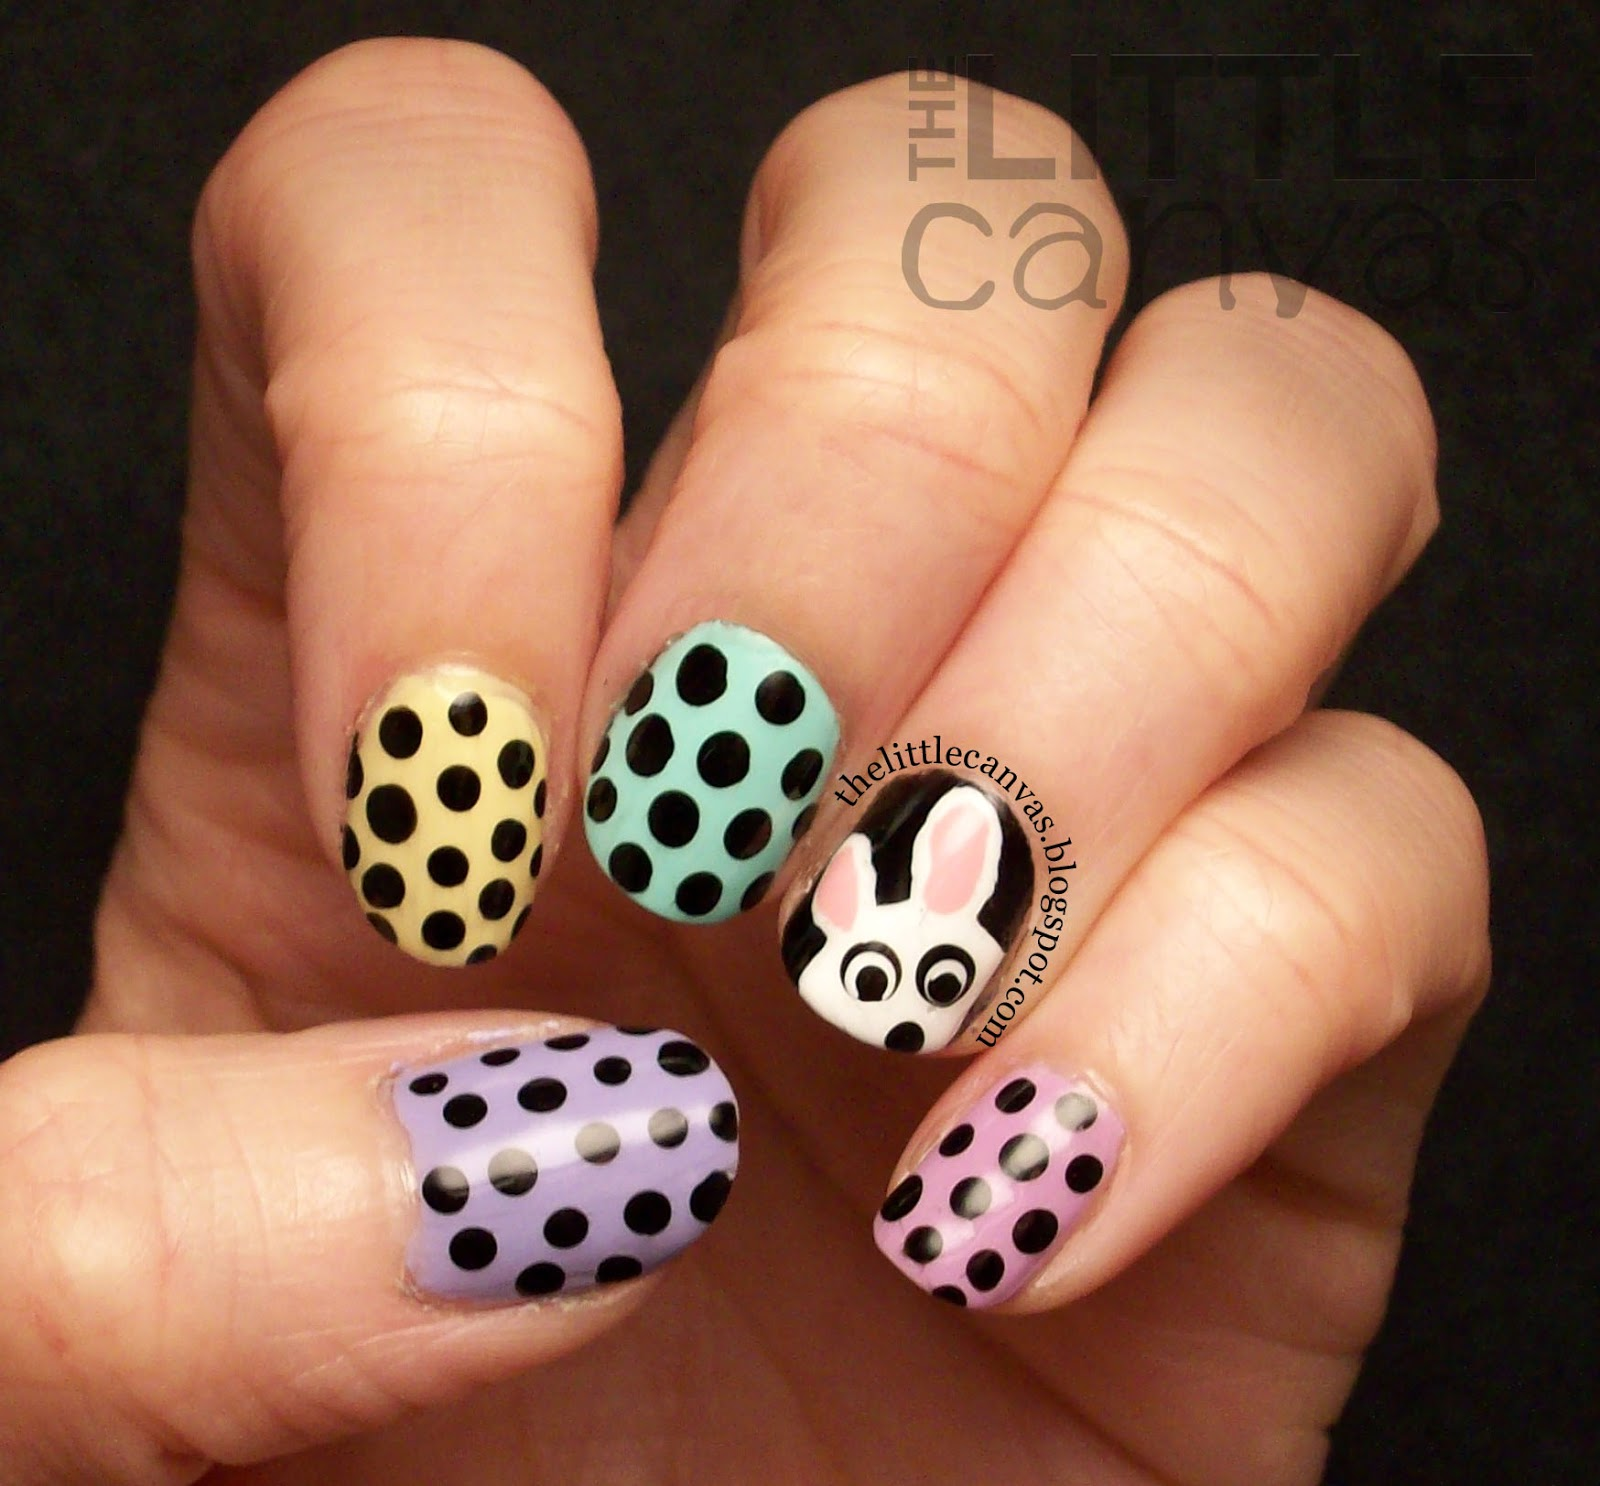 Easter Bunny Nails: A Semi Easter Manicure